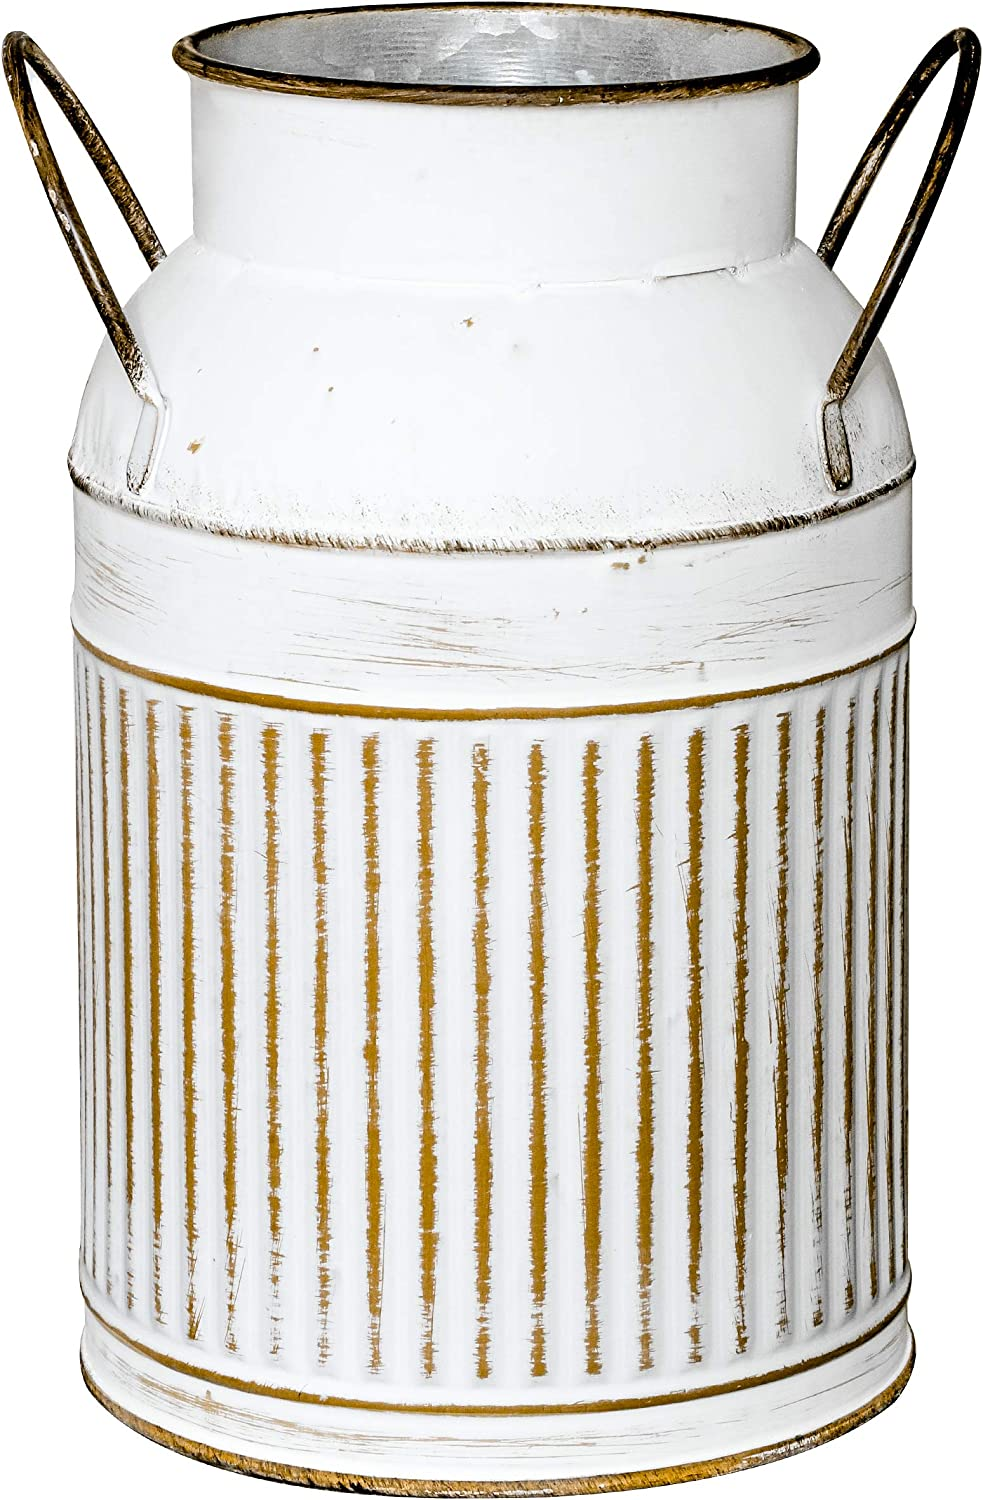 Soyizom Galvanized Decorative Vase with Vertical Straight Line Design Vase Primitive Country Tin Bucket Plant Pots Planters Decor Vase with Handle suitable for Artificial Dry Flower Indoor Outdoor-Can